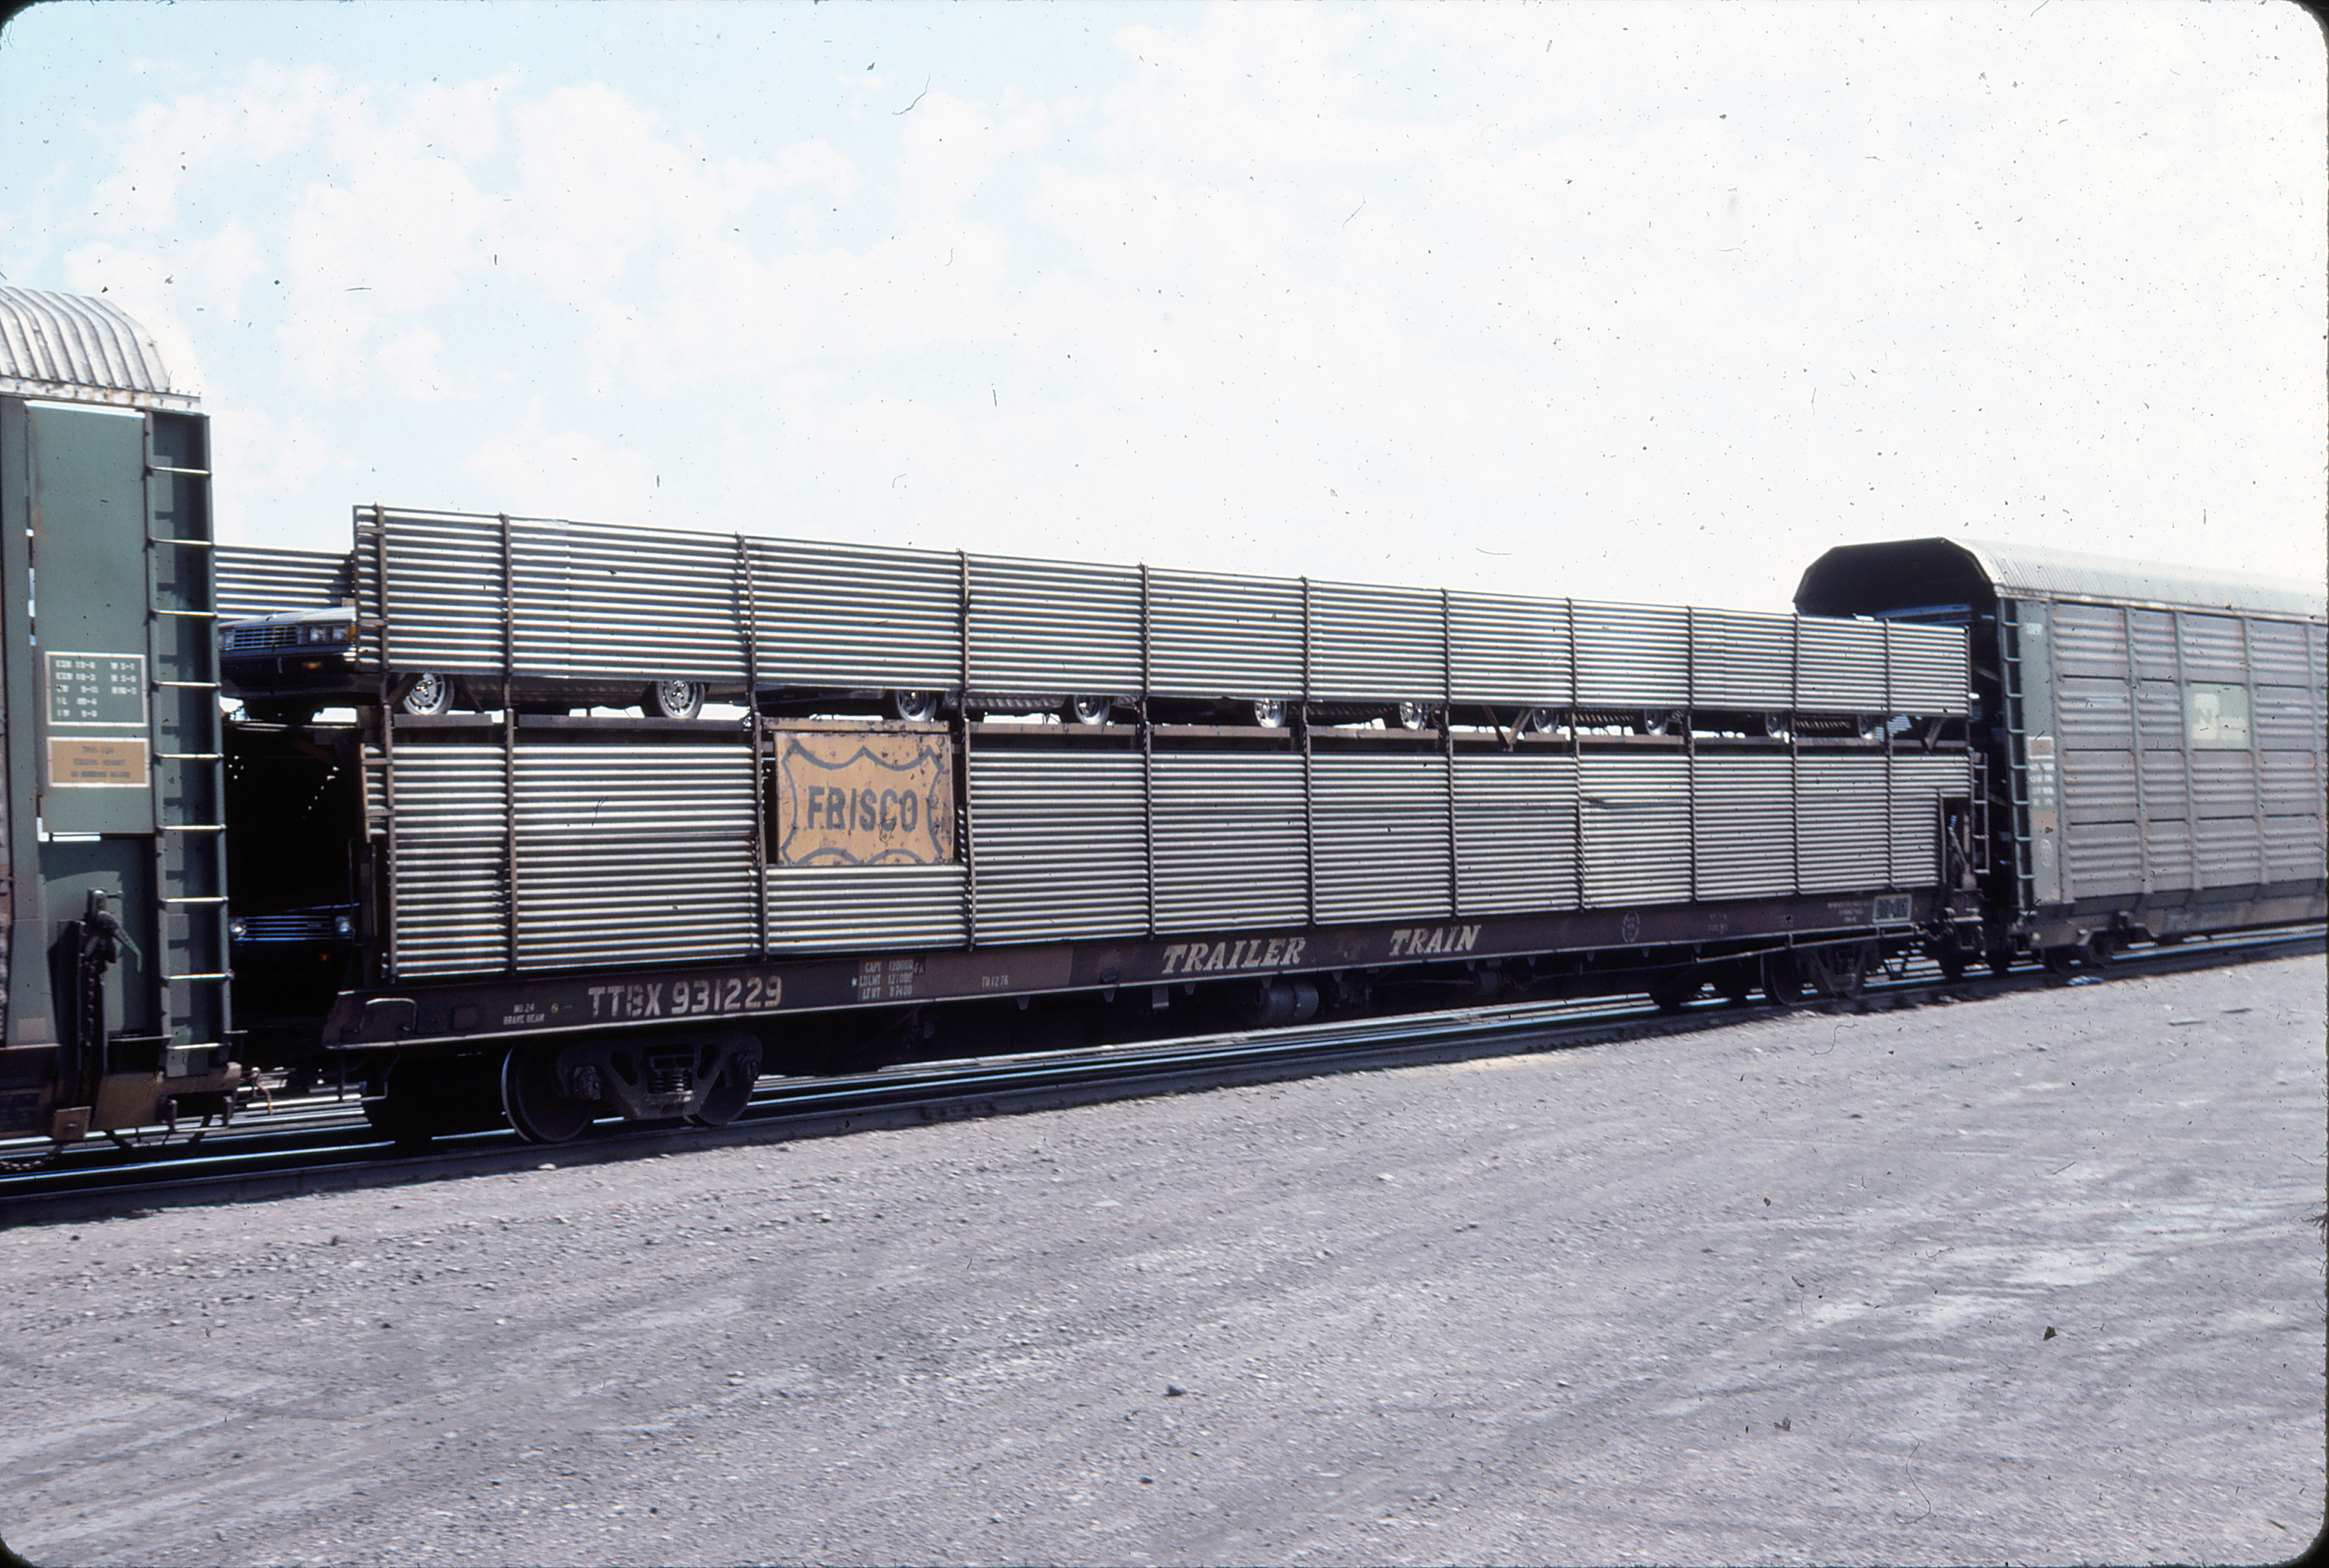 Autorack 931229 at Helena, Montana in August 1983